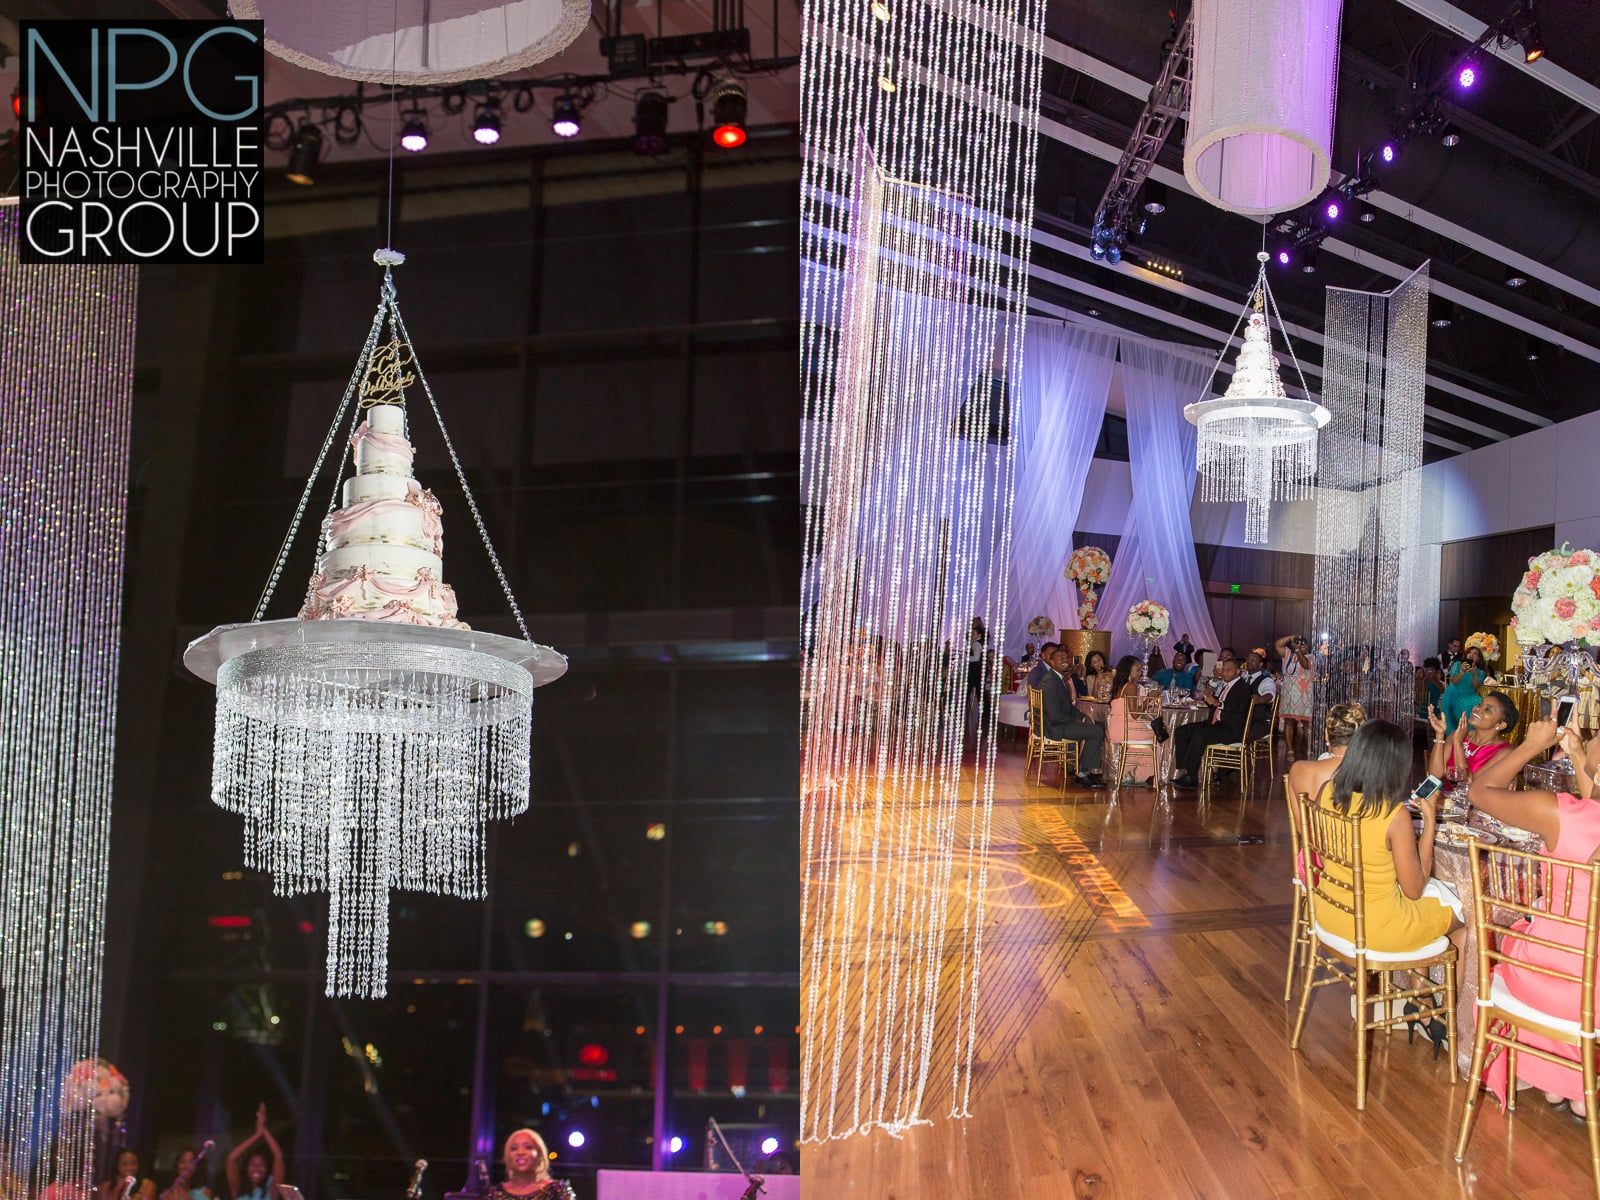 Jay Qualls of the Frosted Affair created a one of a kind wedding cake chandelier.